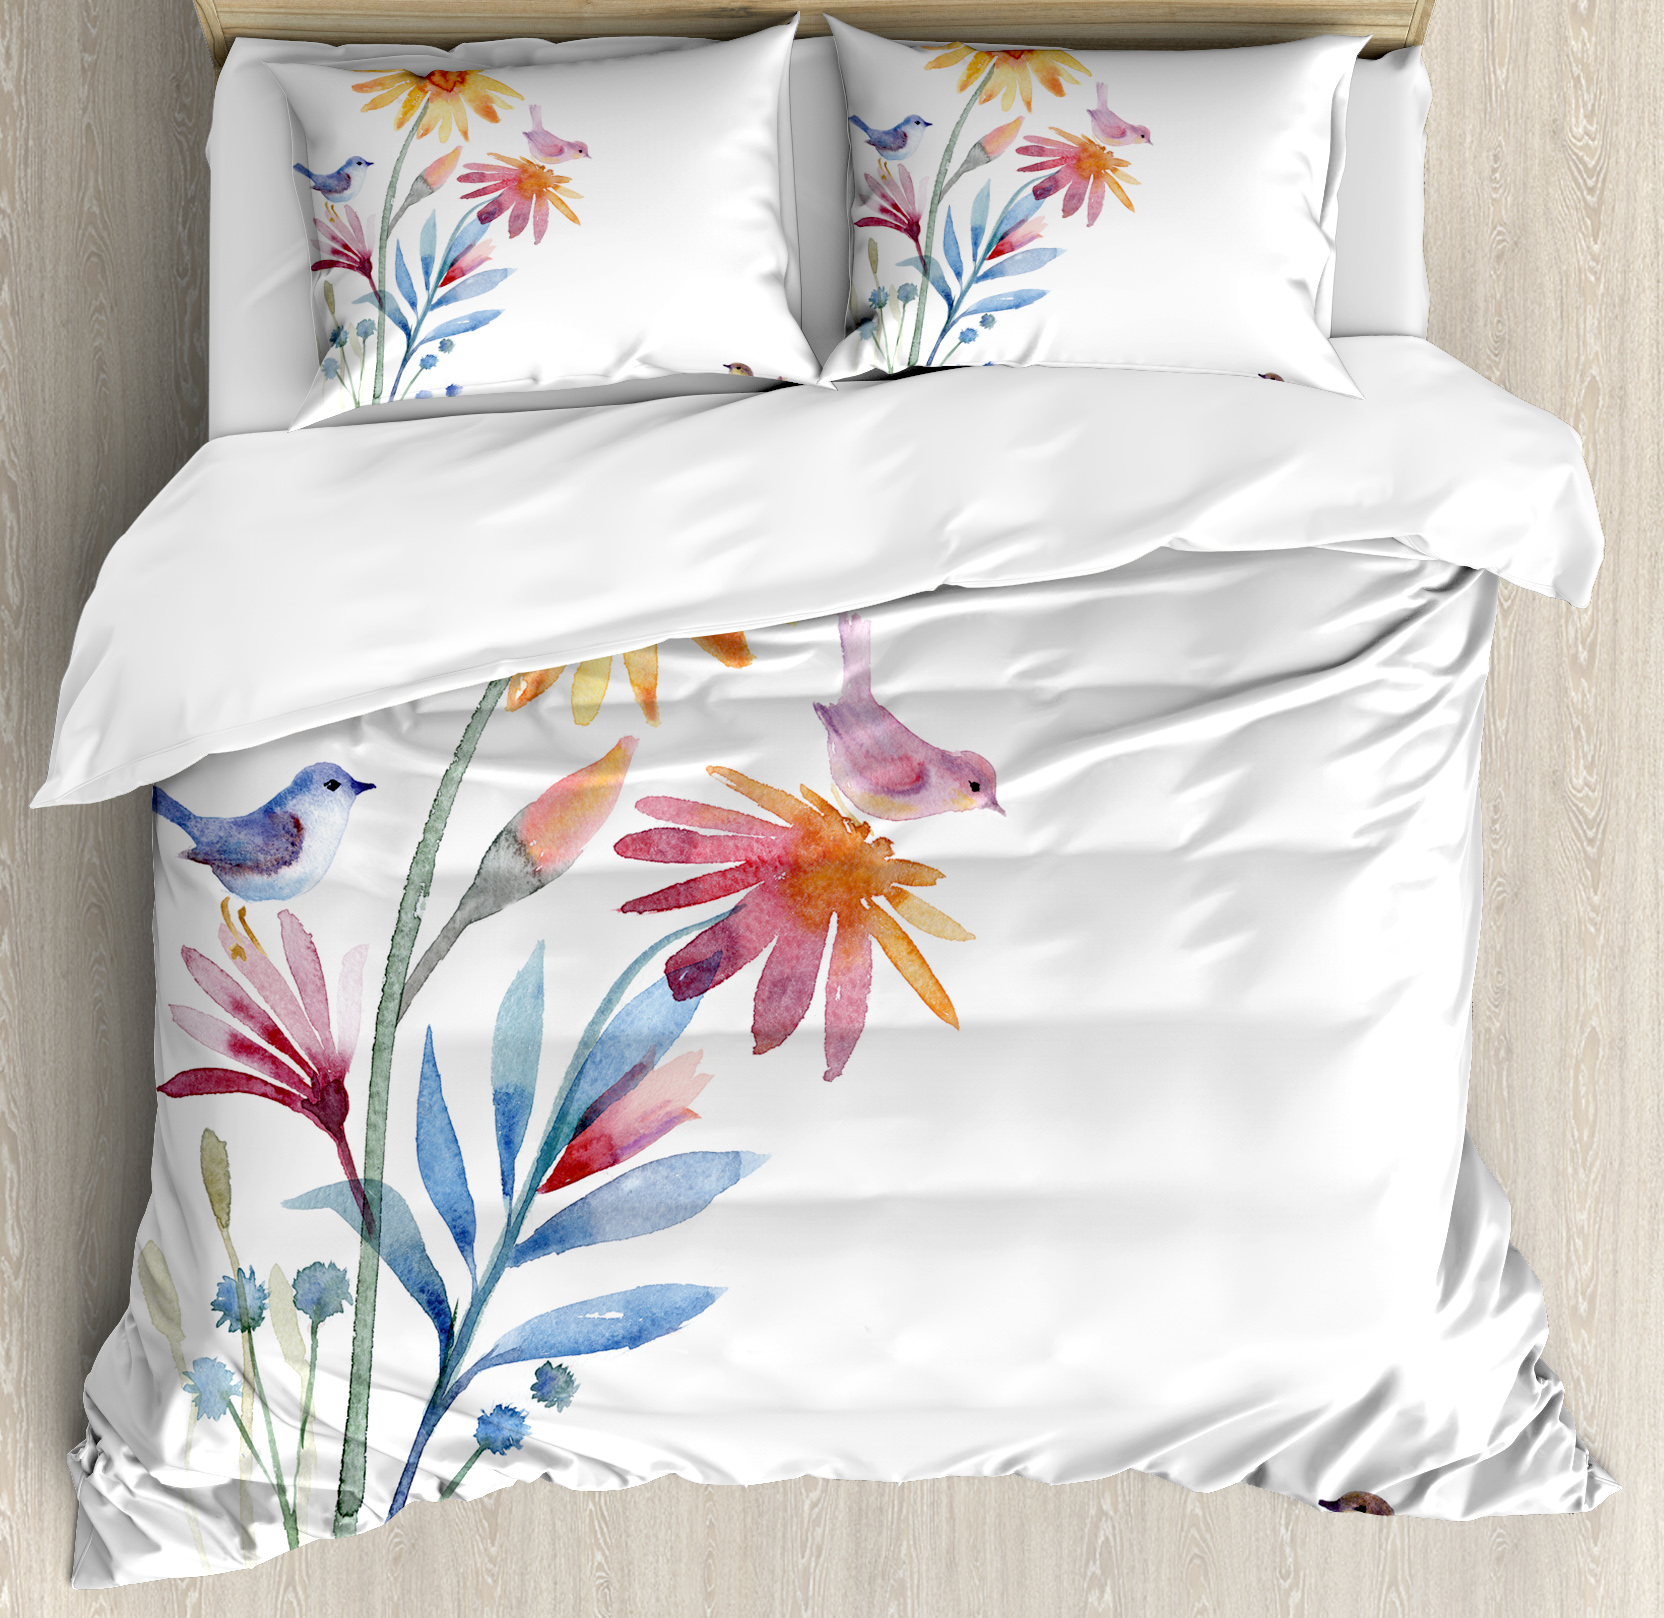 Watercolor Duvet Cover Set, Springtime Flowers with Birds Unusual Color Scheme Brush Effect, Decorative Bedding Set with Pillow Shams, Slate Blue Amber Levander, by Ambesonne